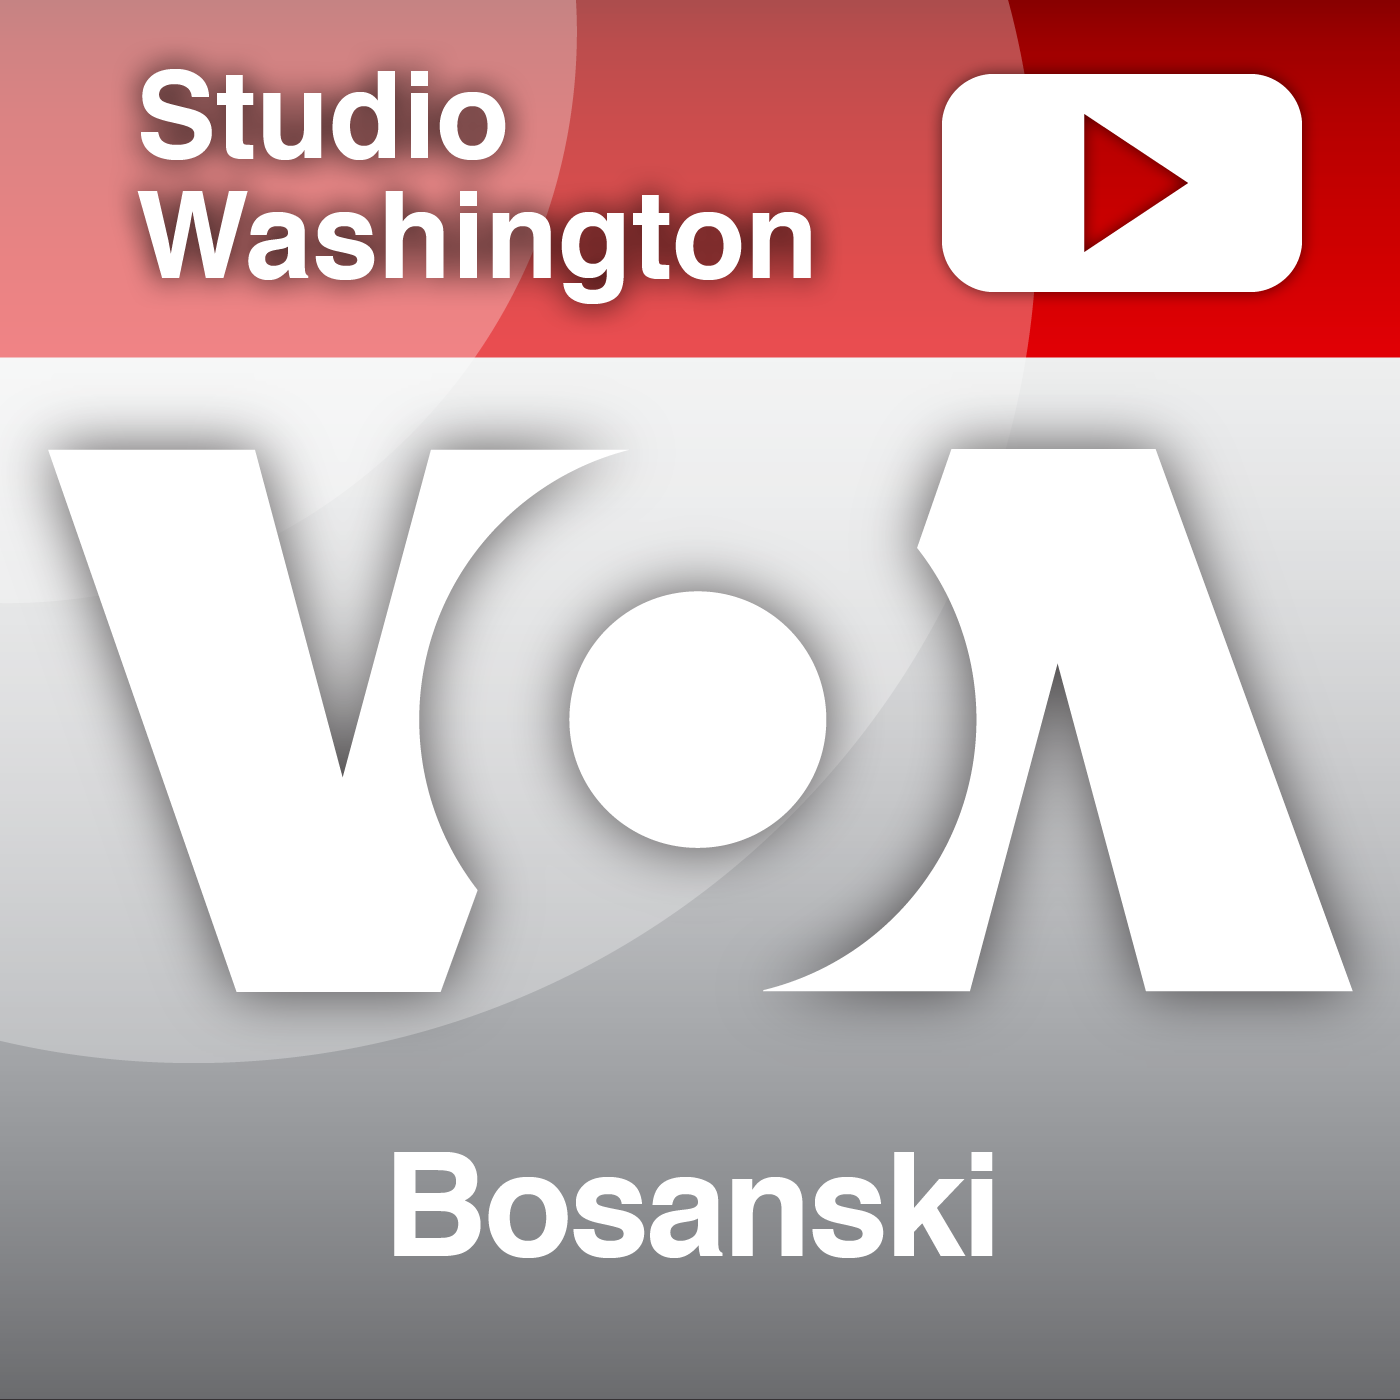 Studio Washington - Voice of America